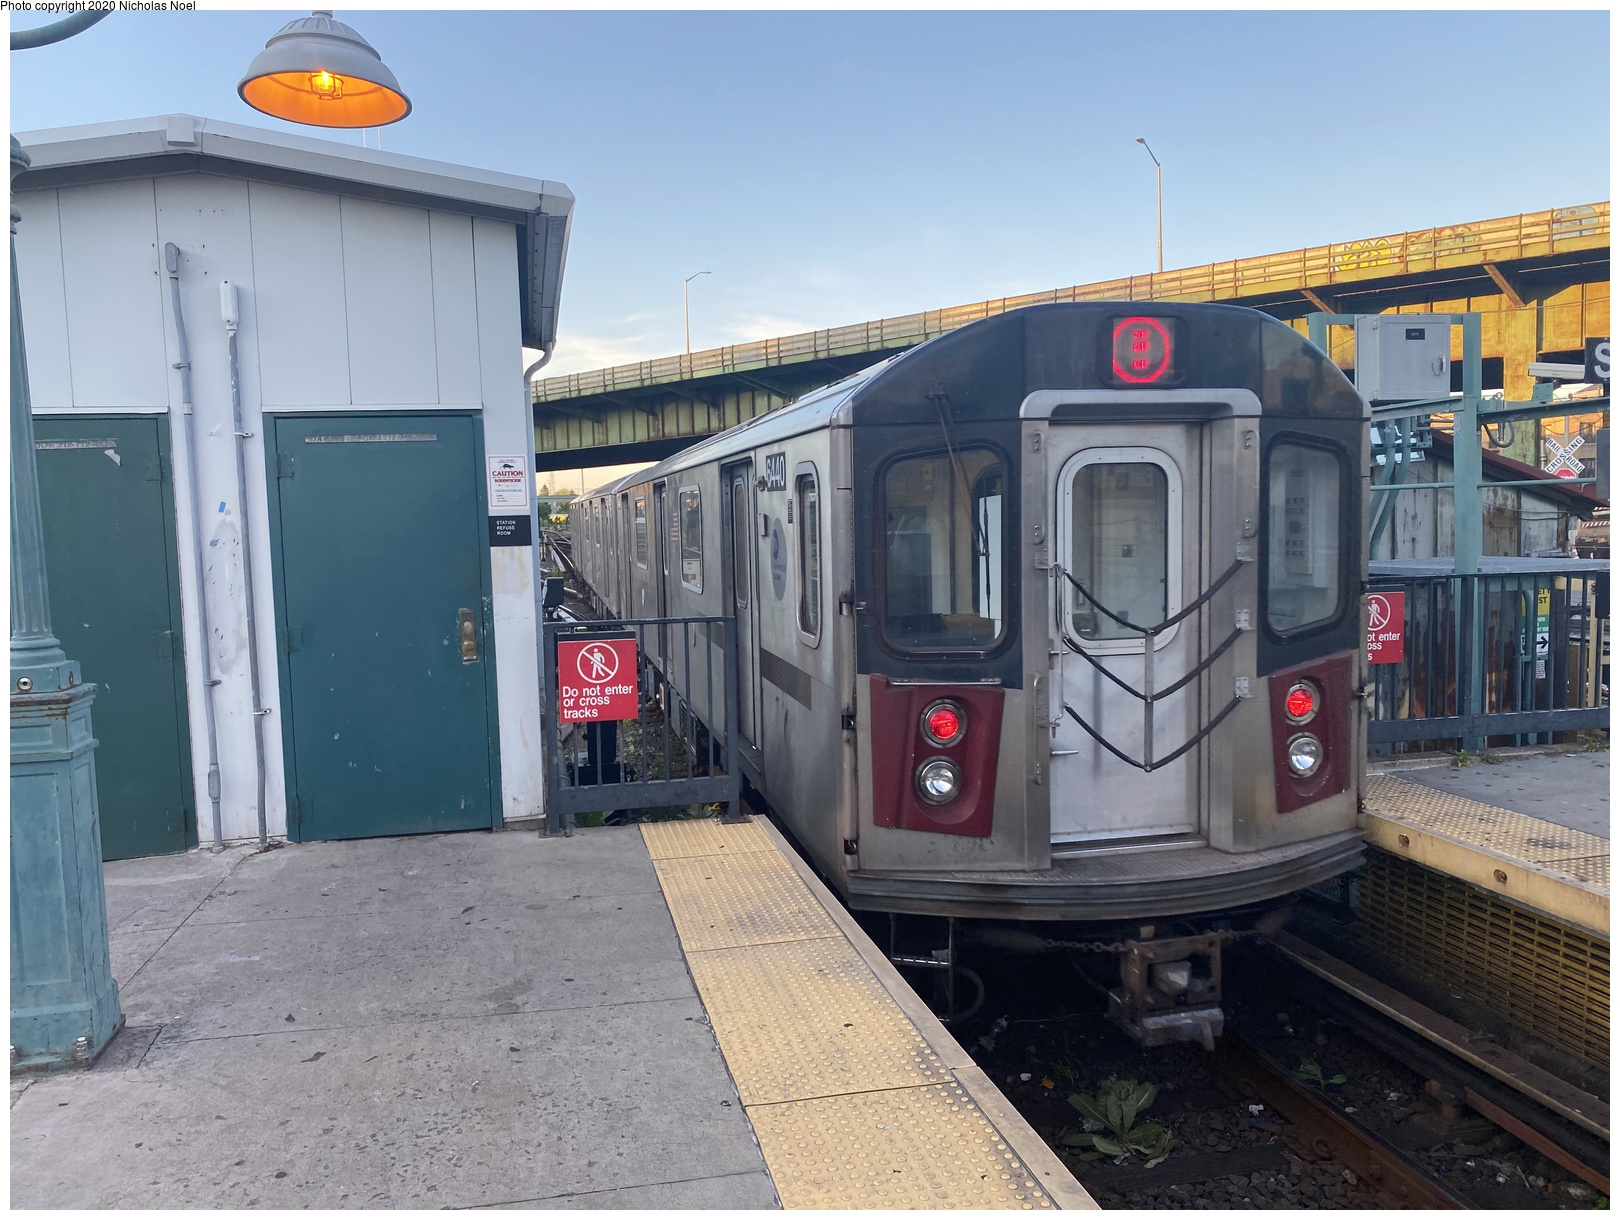 (190k, 1044x727)<br><b>Country:</b> United States<br><b>City:</b> New York<br><b>System:</b> New York City Transit<br><b>Line:</b> BMT Nassau Street/Jamaica Line<br><b>Location:</b> Broadway/East New York (Broadway Junction) <br><b>Route:</b> Work Service<br><b>Car:</b> BMT Elevated Gate Car  <br><b>Photo by:</b> Joel Shanus<br><b>Notes:</b> BU 1300 series Gate cars with flat car in middle in work service, circa 1954.<br><b>Viewed (this week/total):</b> 0 / 1404